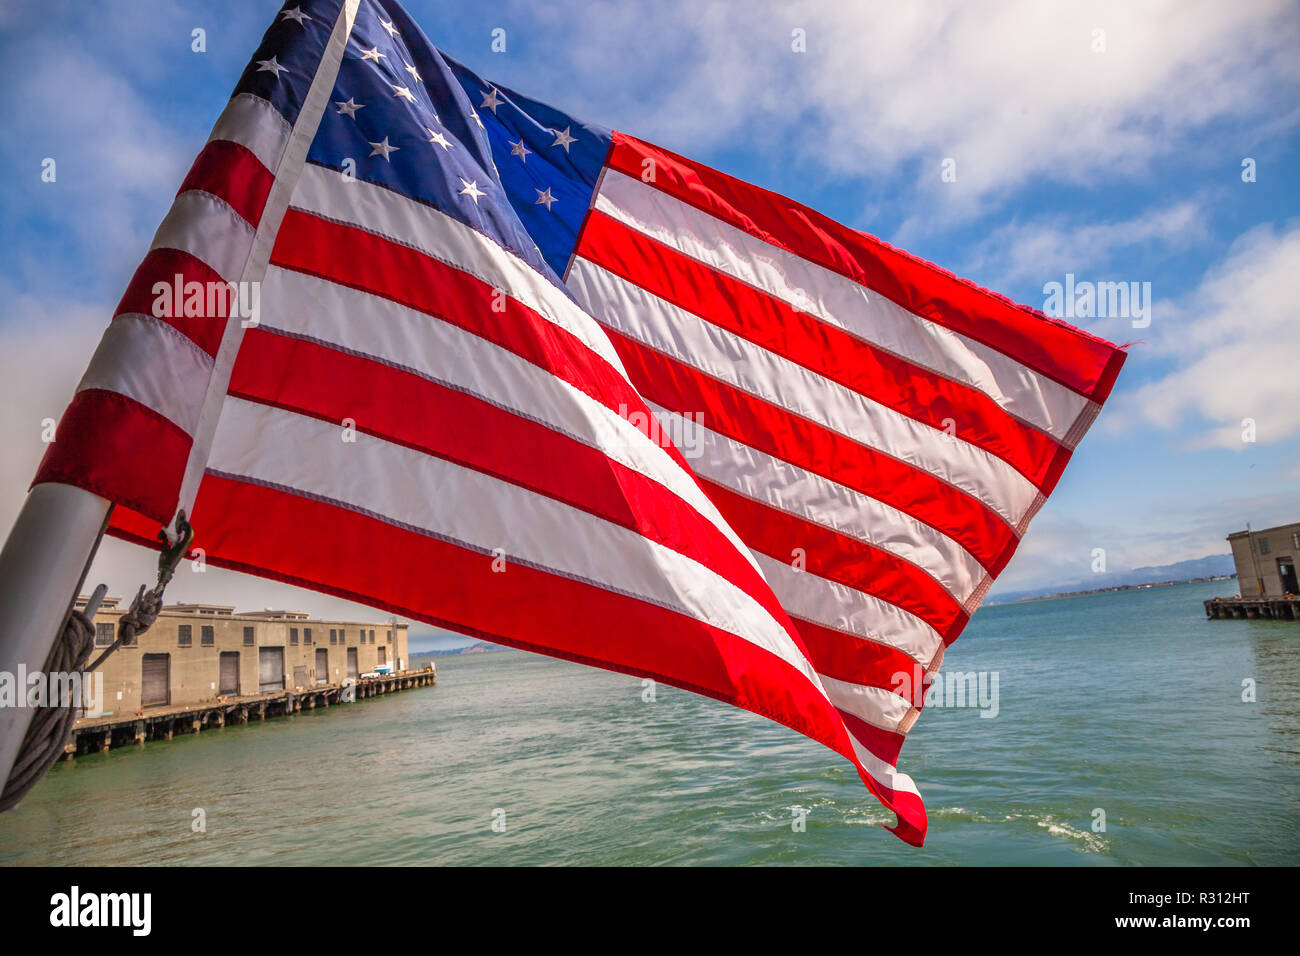 Alcatraz tour to Alcatraz island by boat trip in San Francisco Bay, California, United States. Ferry boat with American flag waving in San Francisco pier. - Stock Image